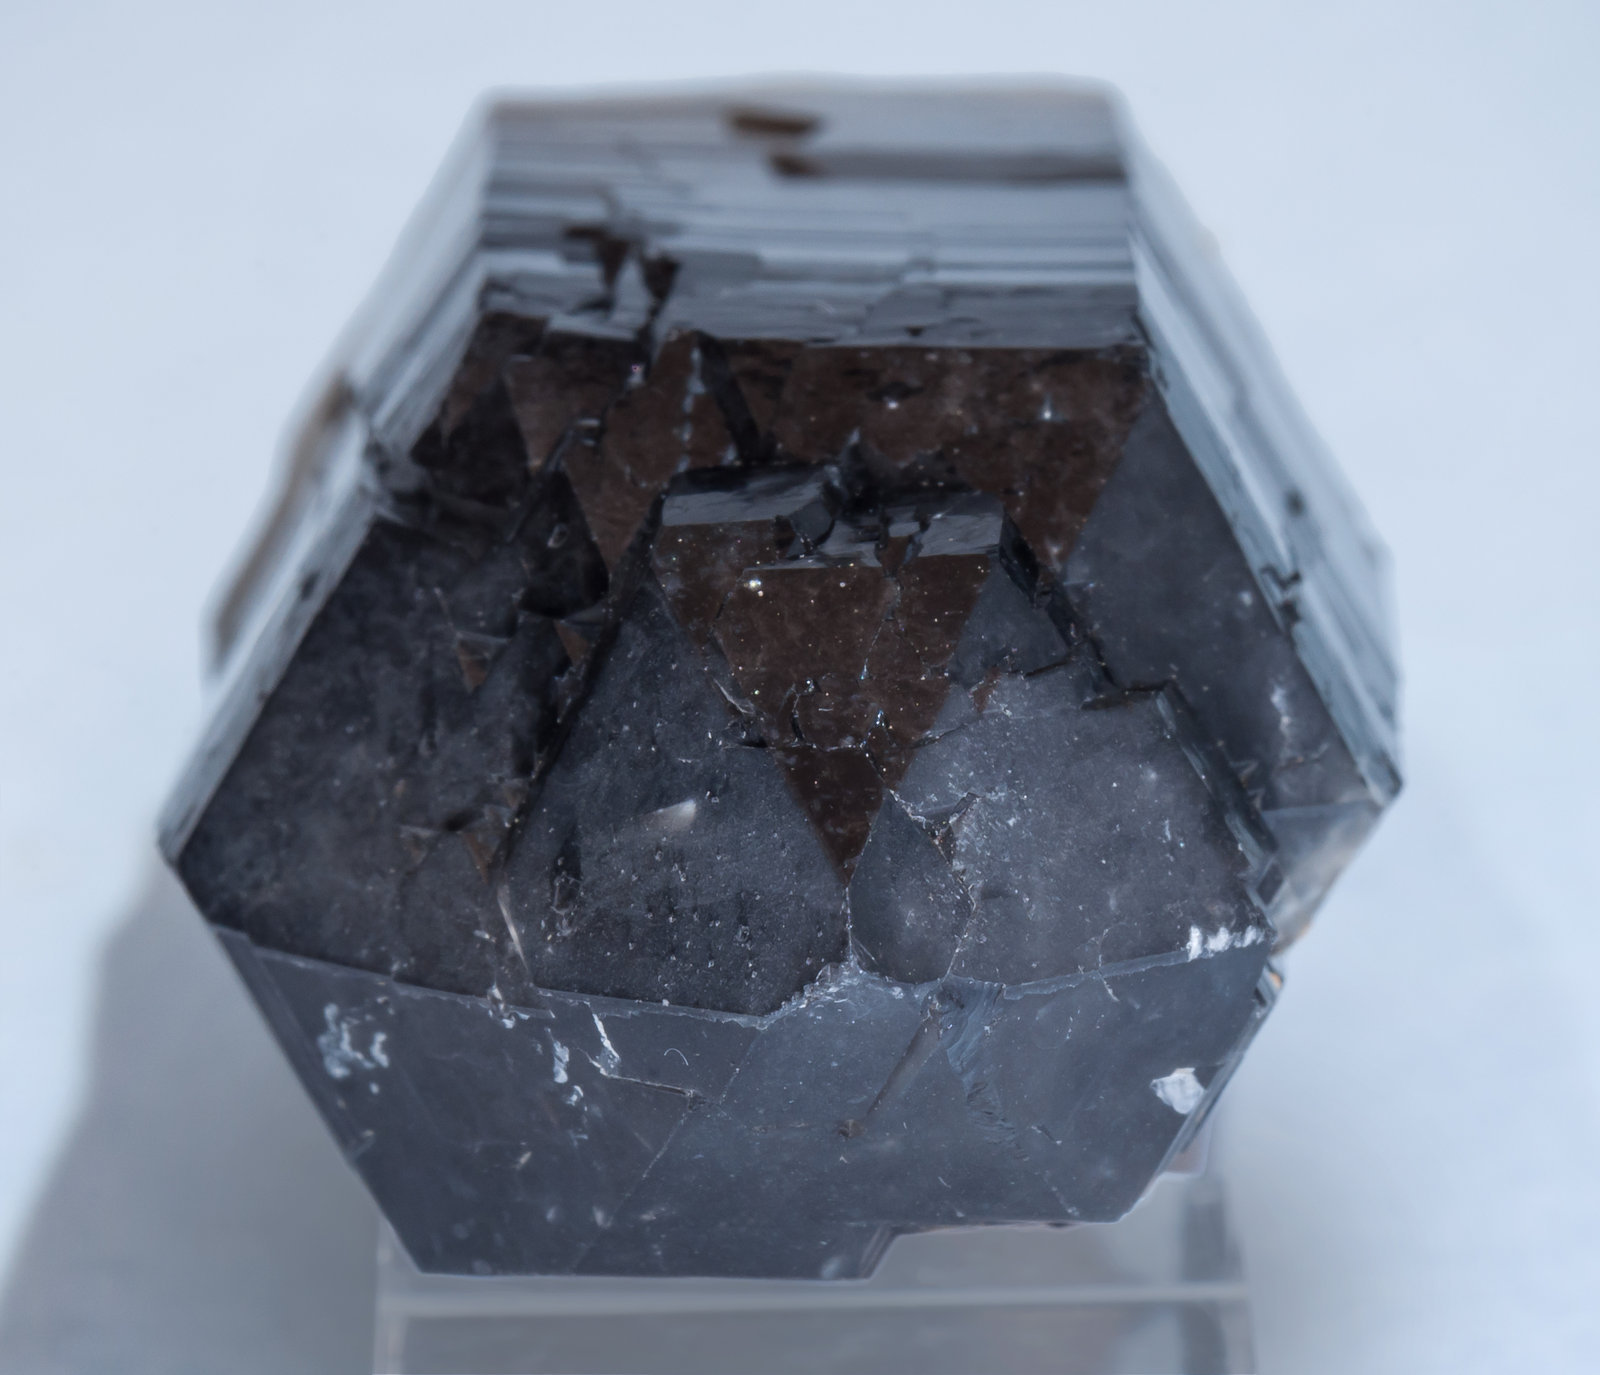 specimens/s_imagesAK4/Quartz_smoky-DH26AK4t.jpg